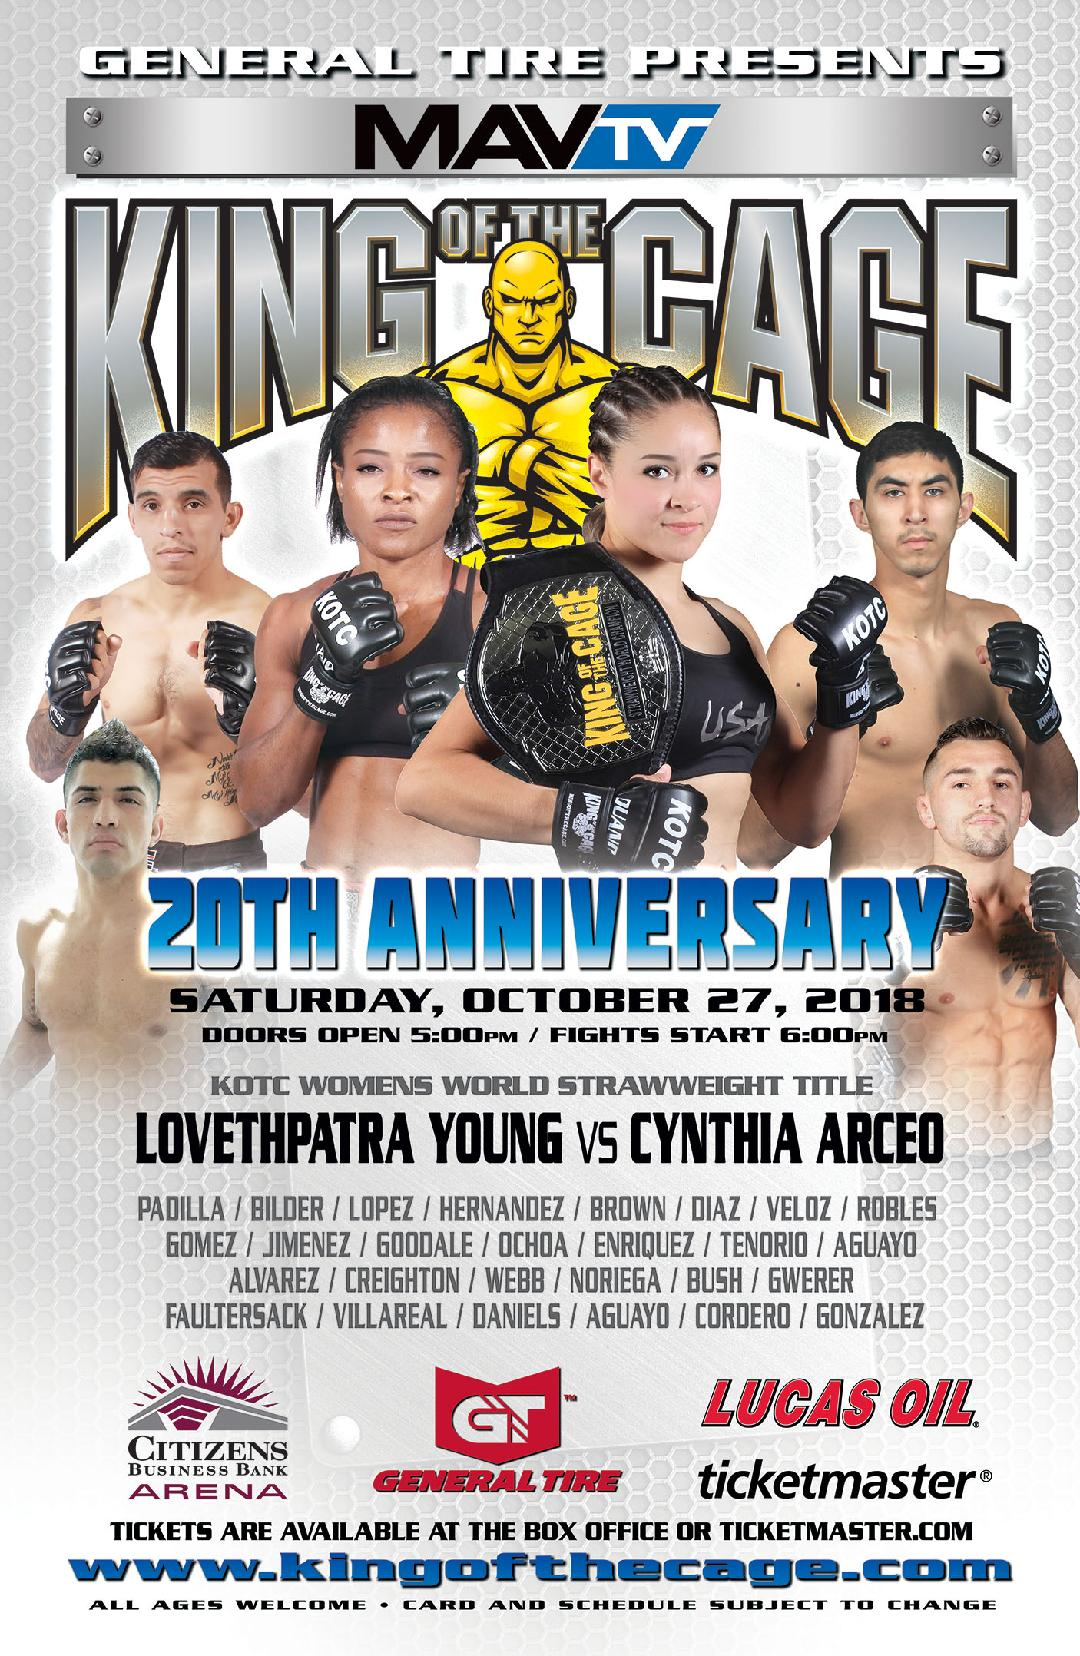 King of the Cage: Duke City, Results